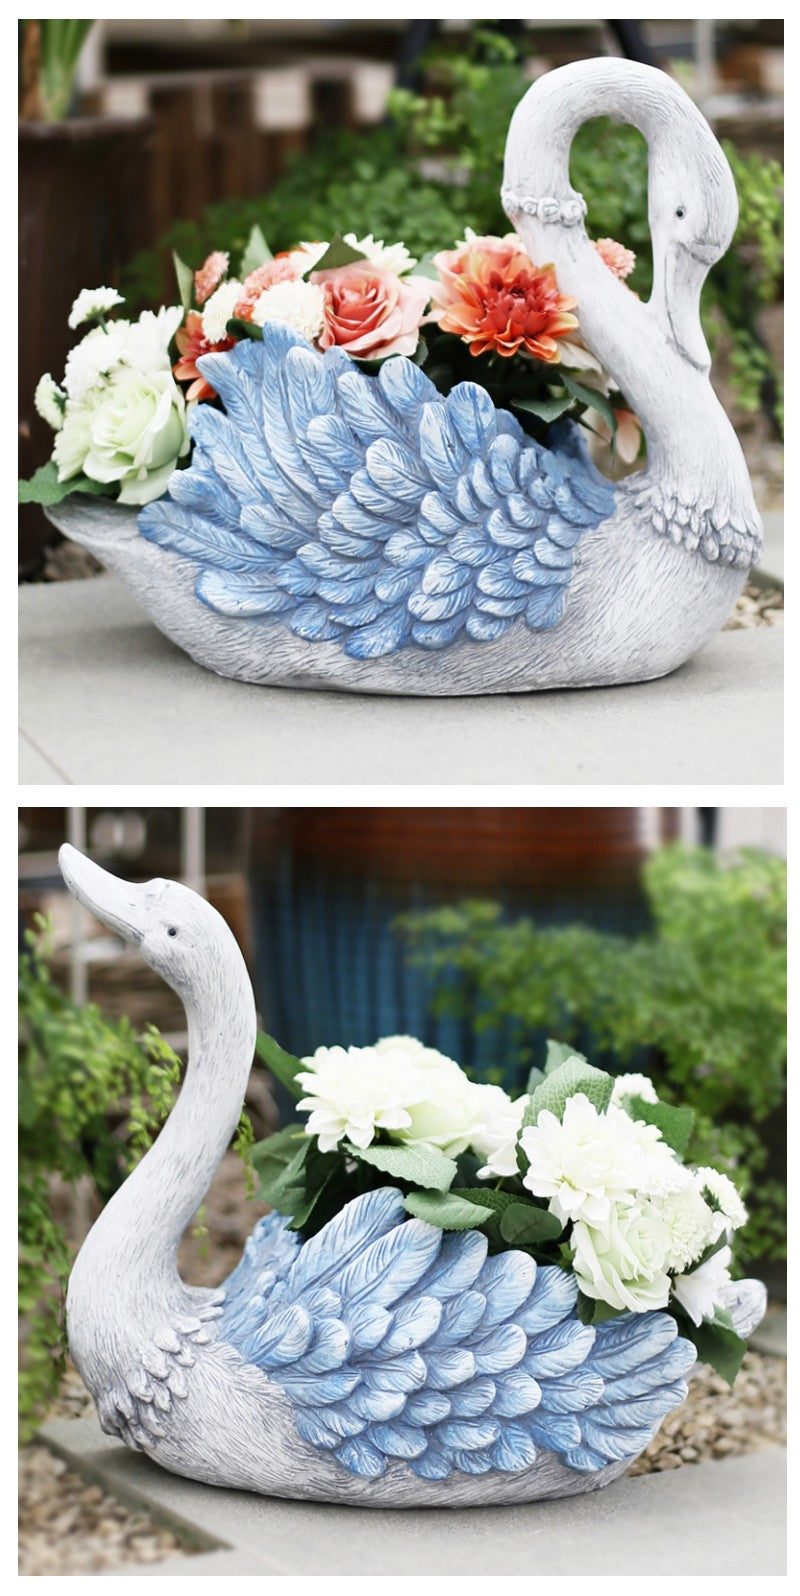 Blue Wing Swan Flower Pot, Small Animal Statue for Garden Ornament, Swan Lovers Statues, Villa Courtyard Decor, Outdoor Decoration Ideas, Garden Ideas